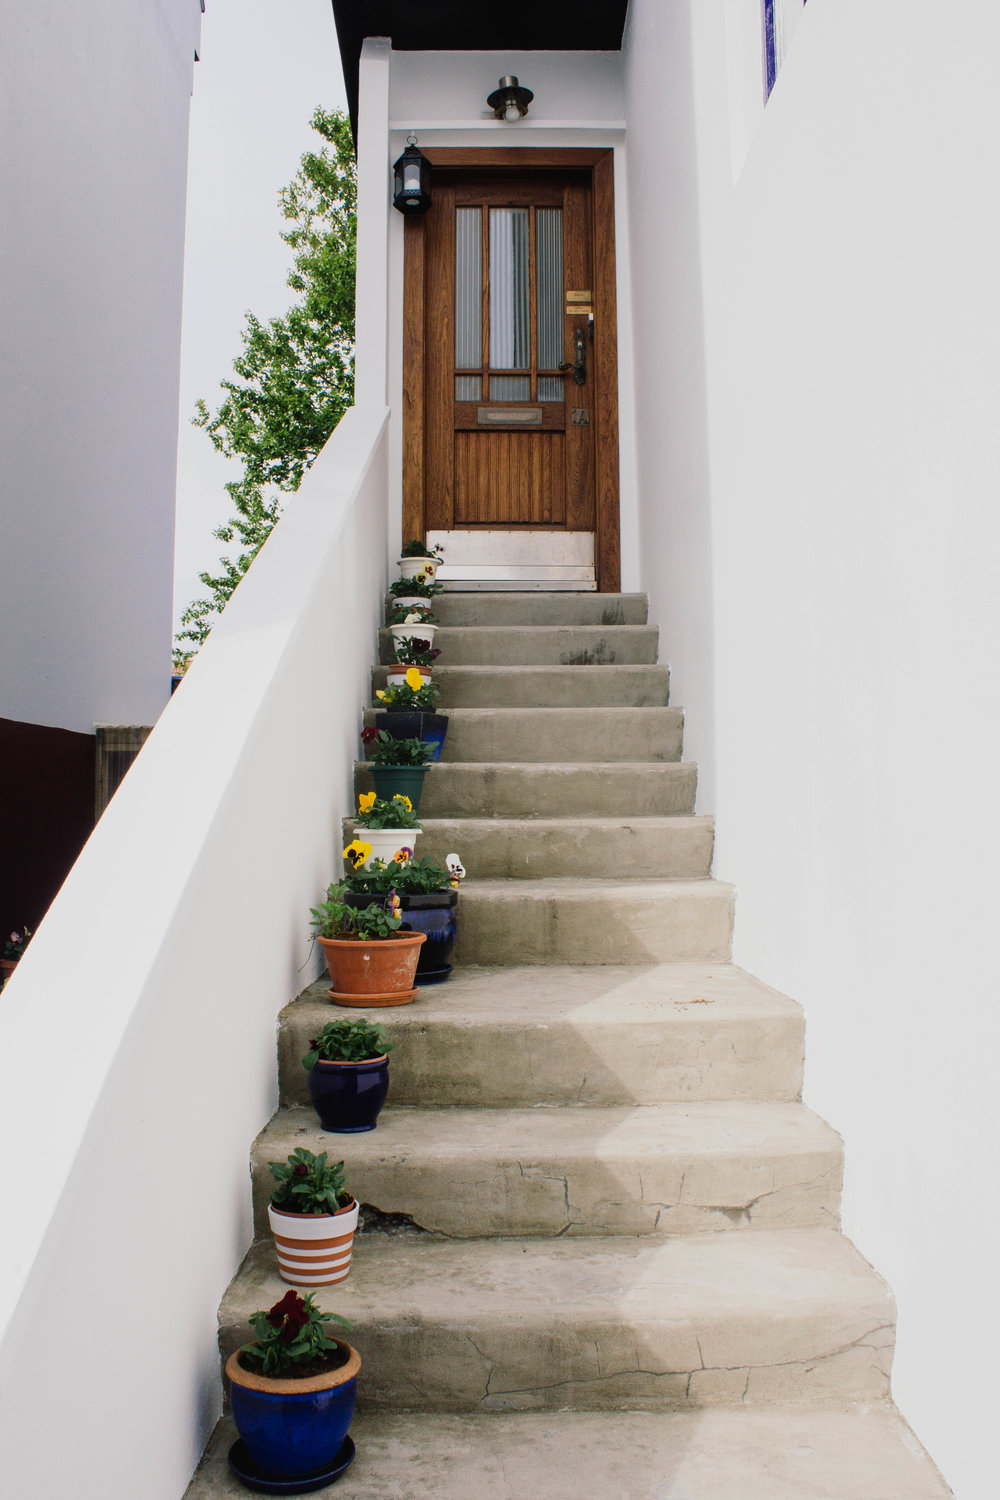 So many cute, plant-filled entryways